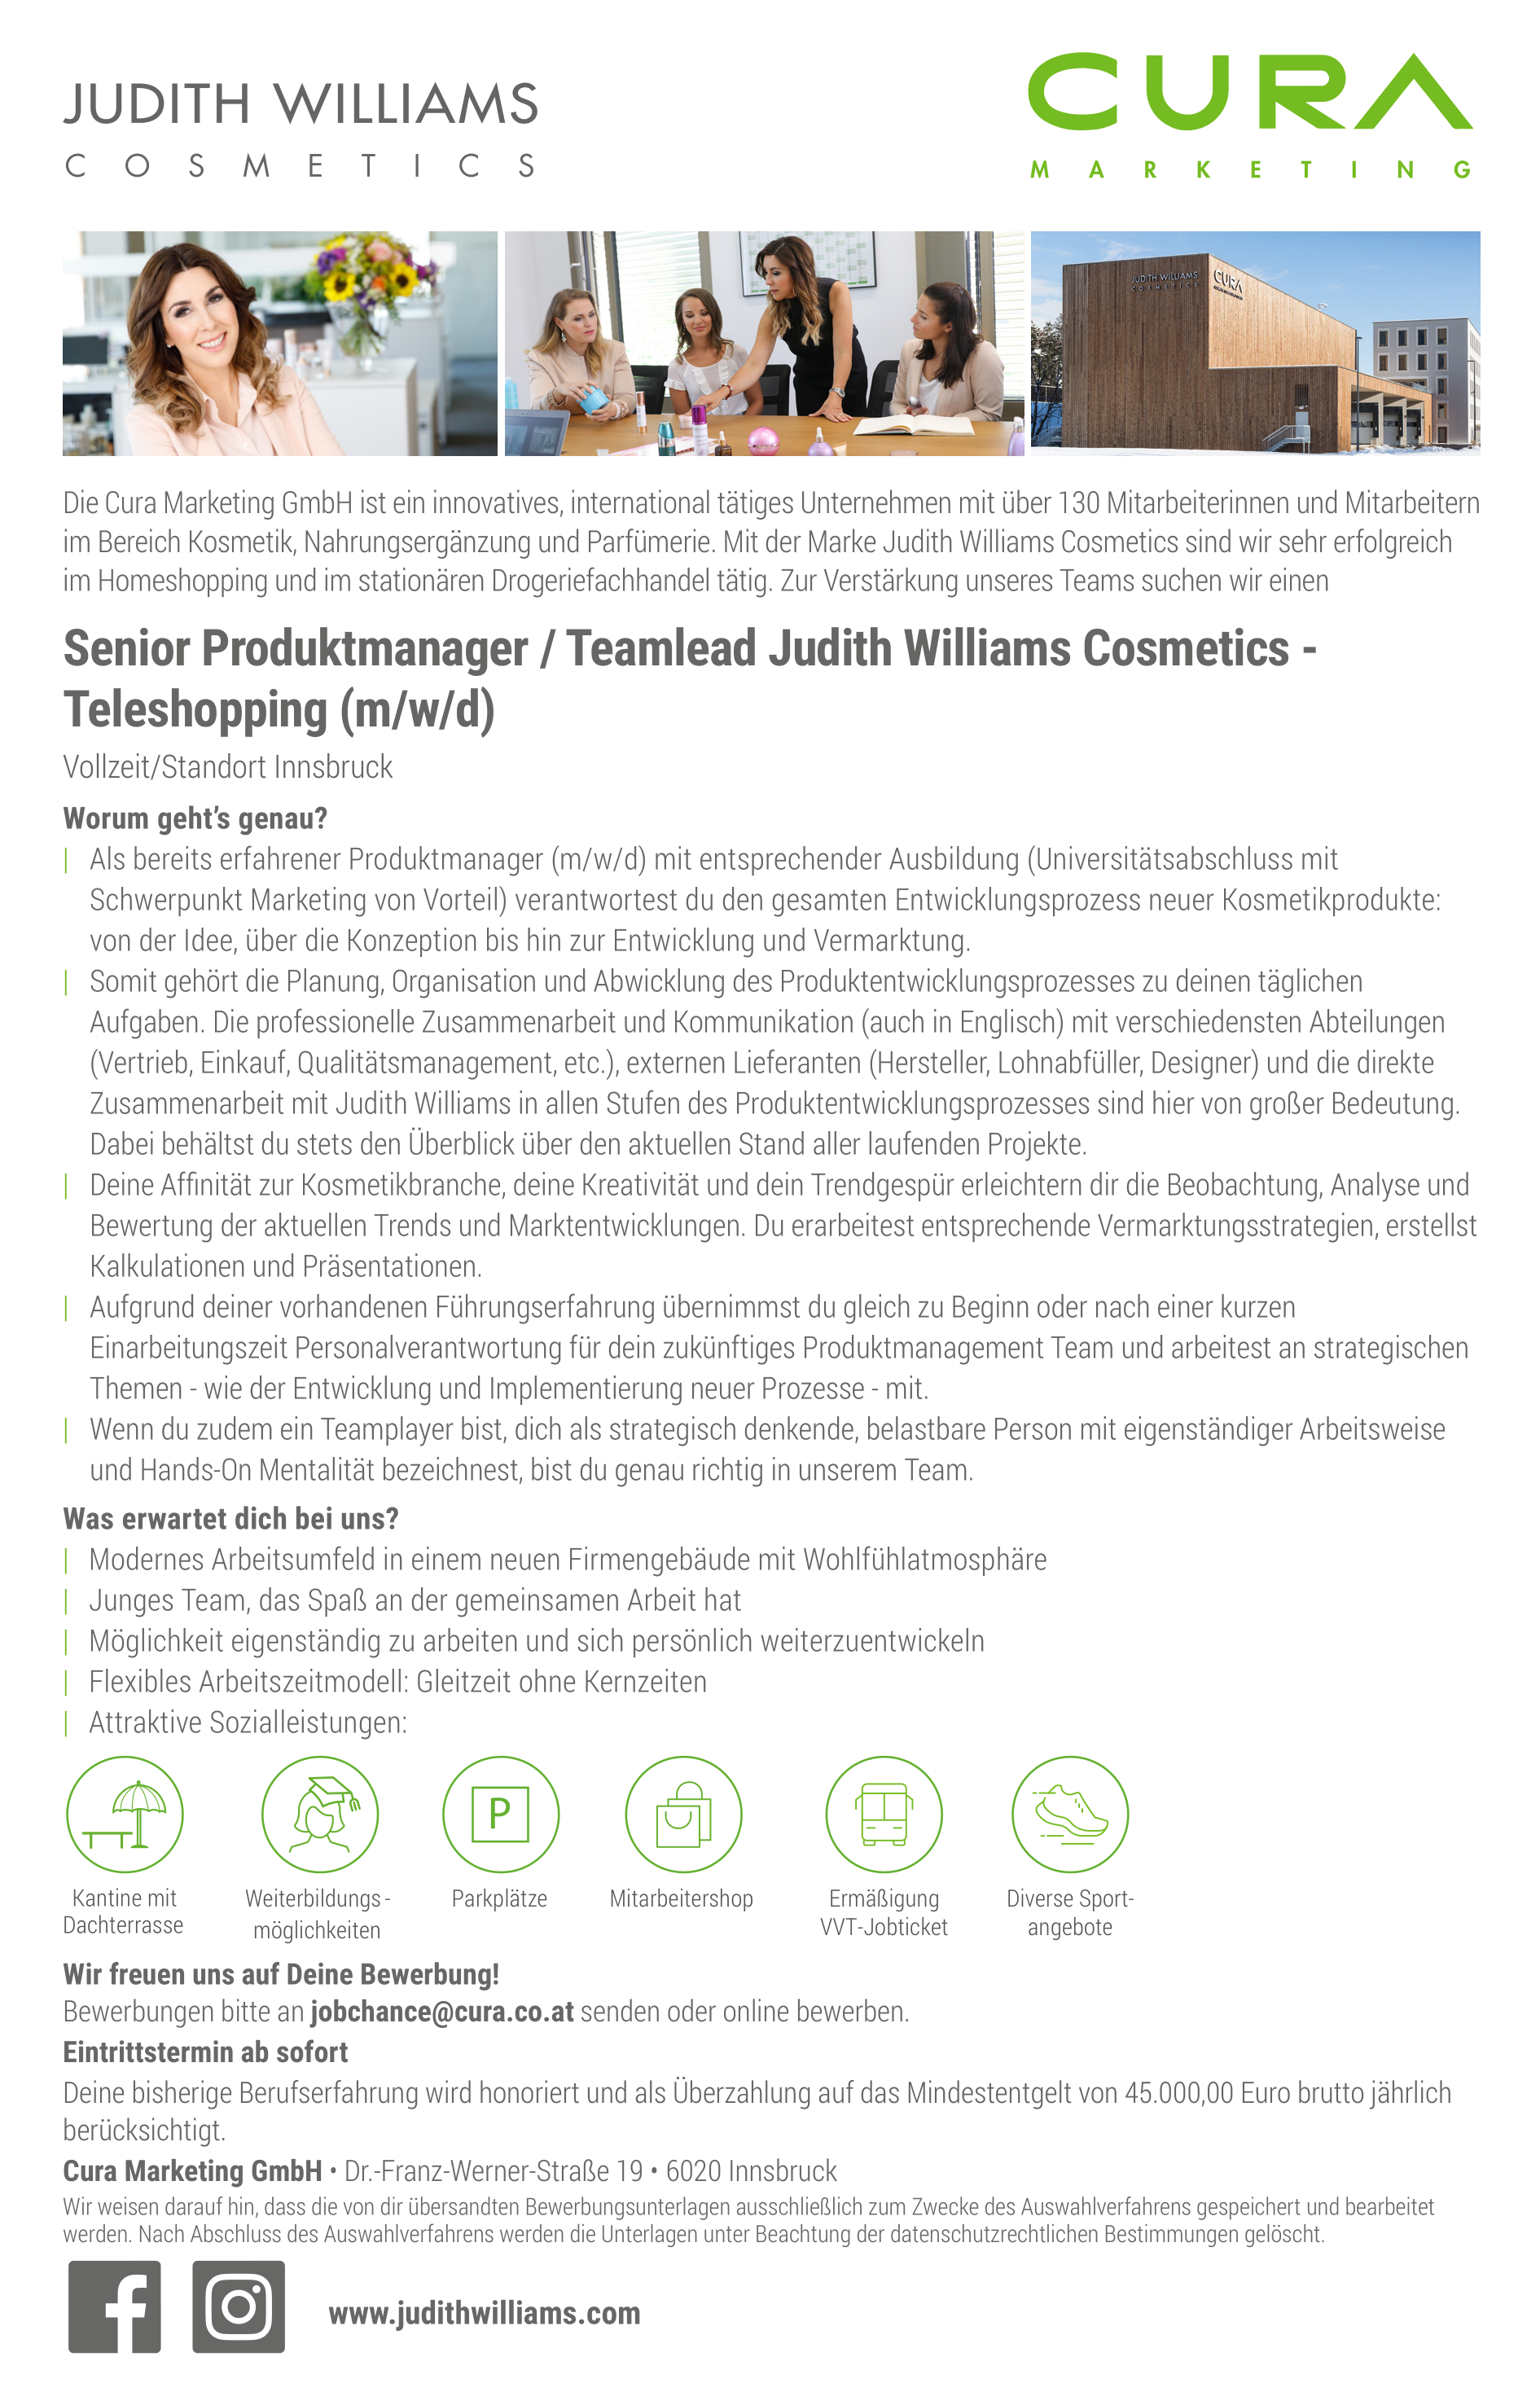 Senior Produktmanager / Teamlead Judith Williams Cosmetics - Teleshopping (m/w/d)